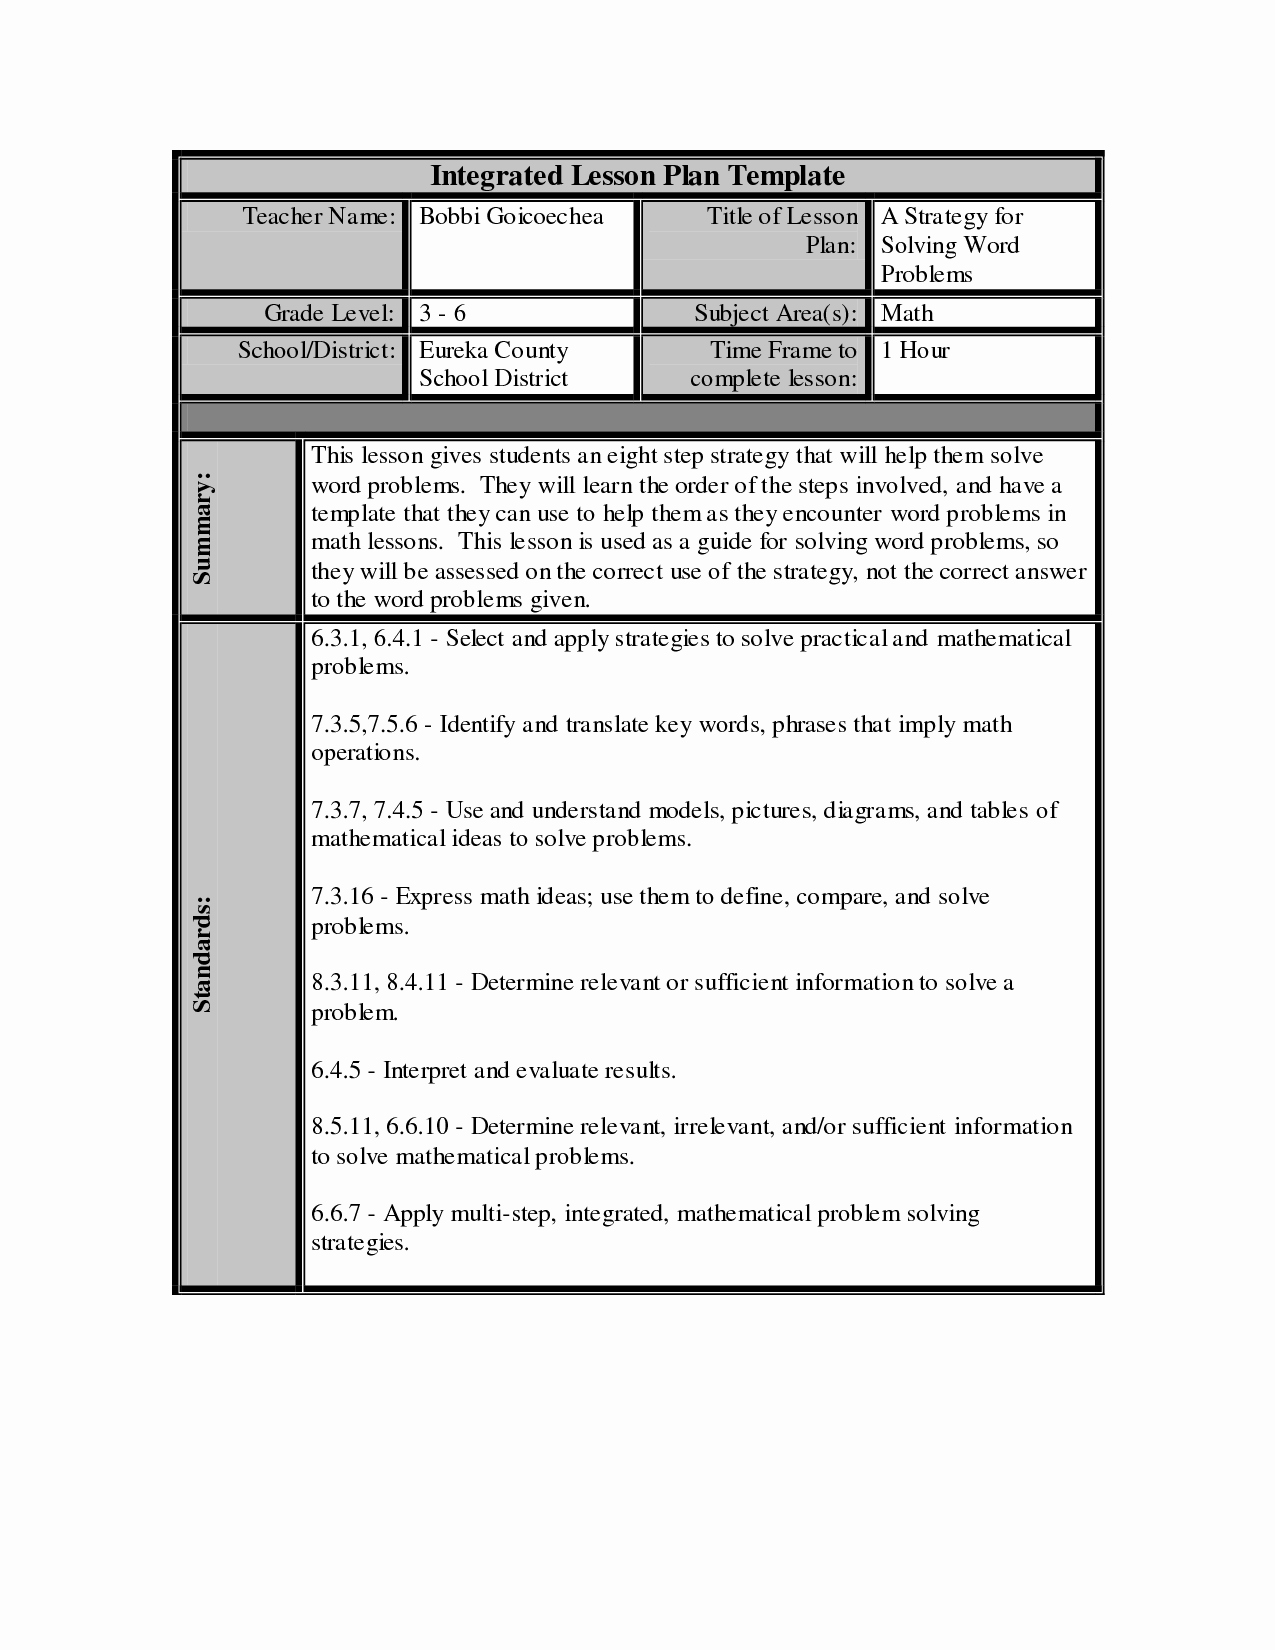 post math lesson plan template